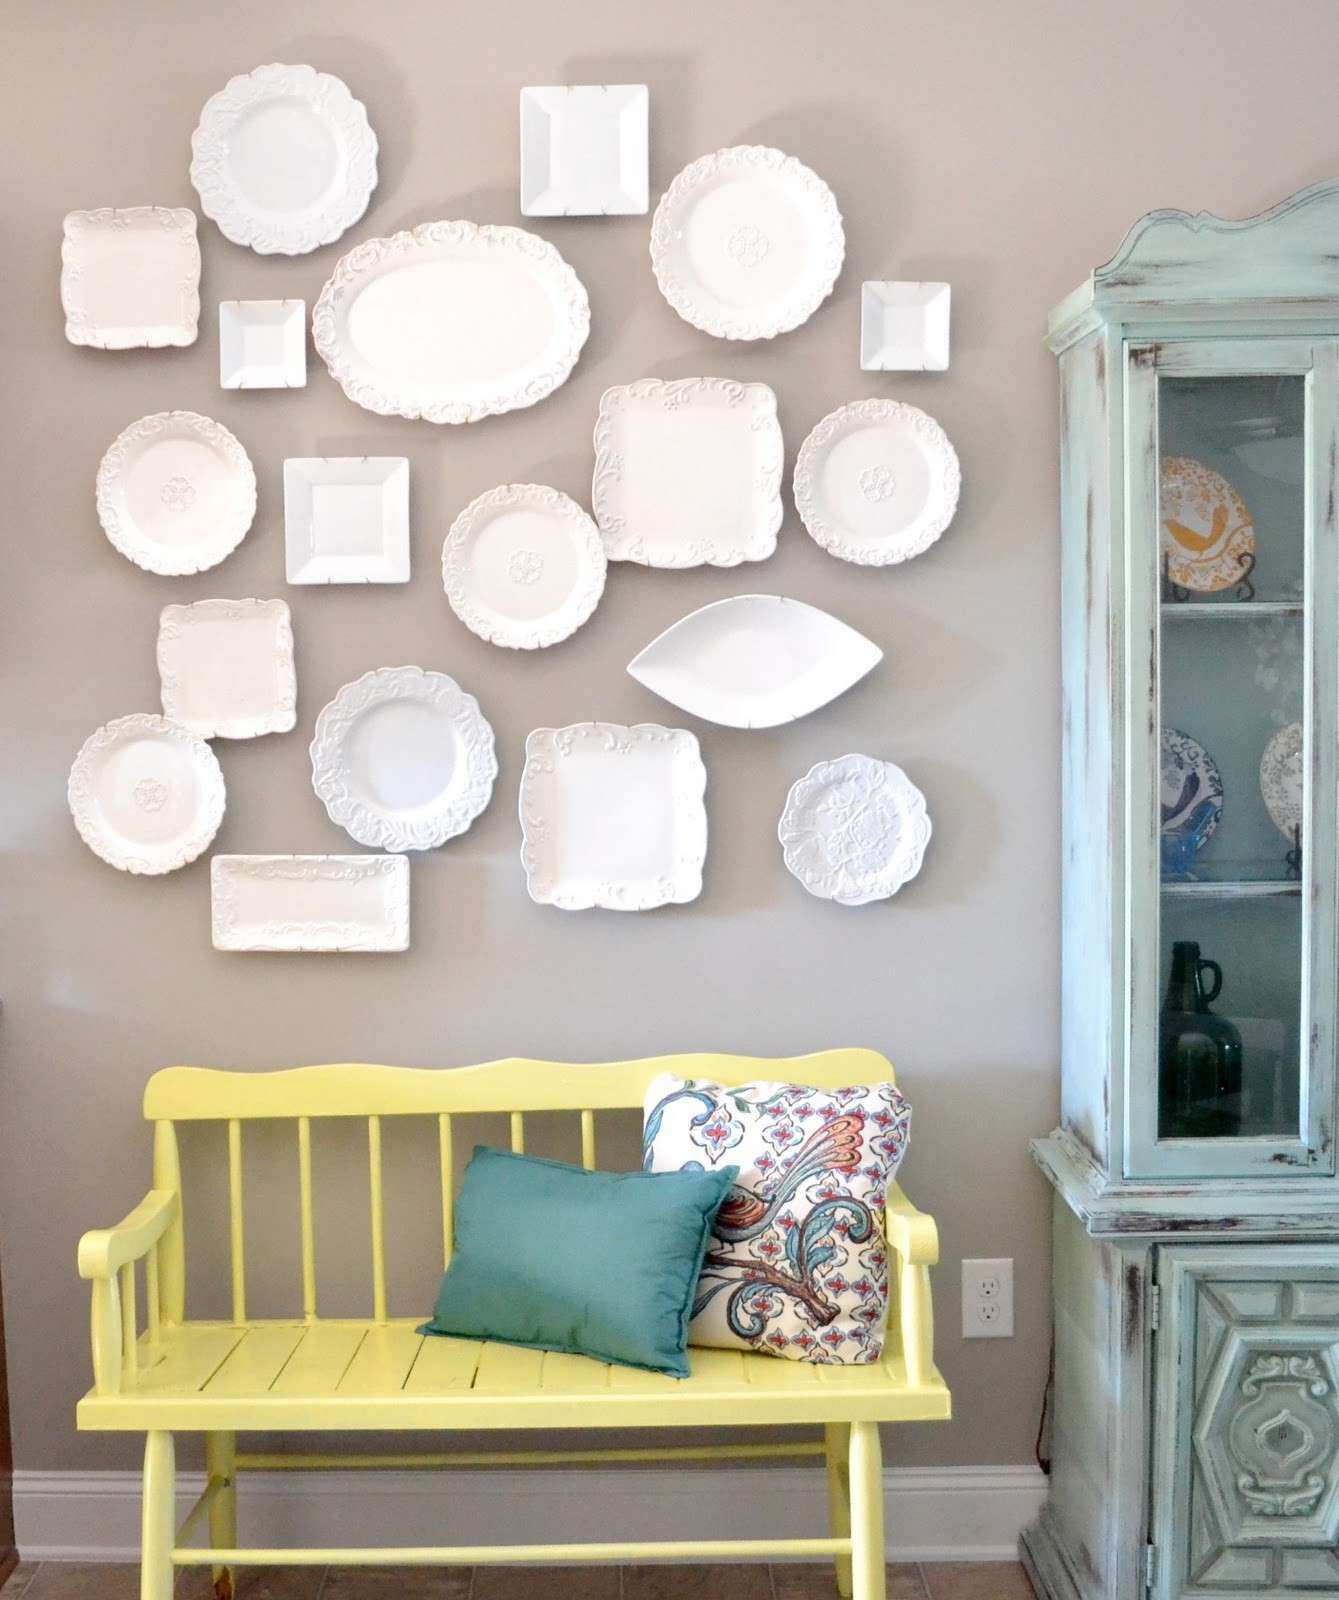 Pictures to Hang On Wall New Decorative Plates to Hang Wall Home Decor Eddyinthecoffee Design & Pictures to Hang On Wall New Decorative Plates to Hang Wall Home ...